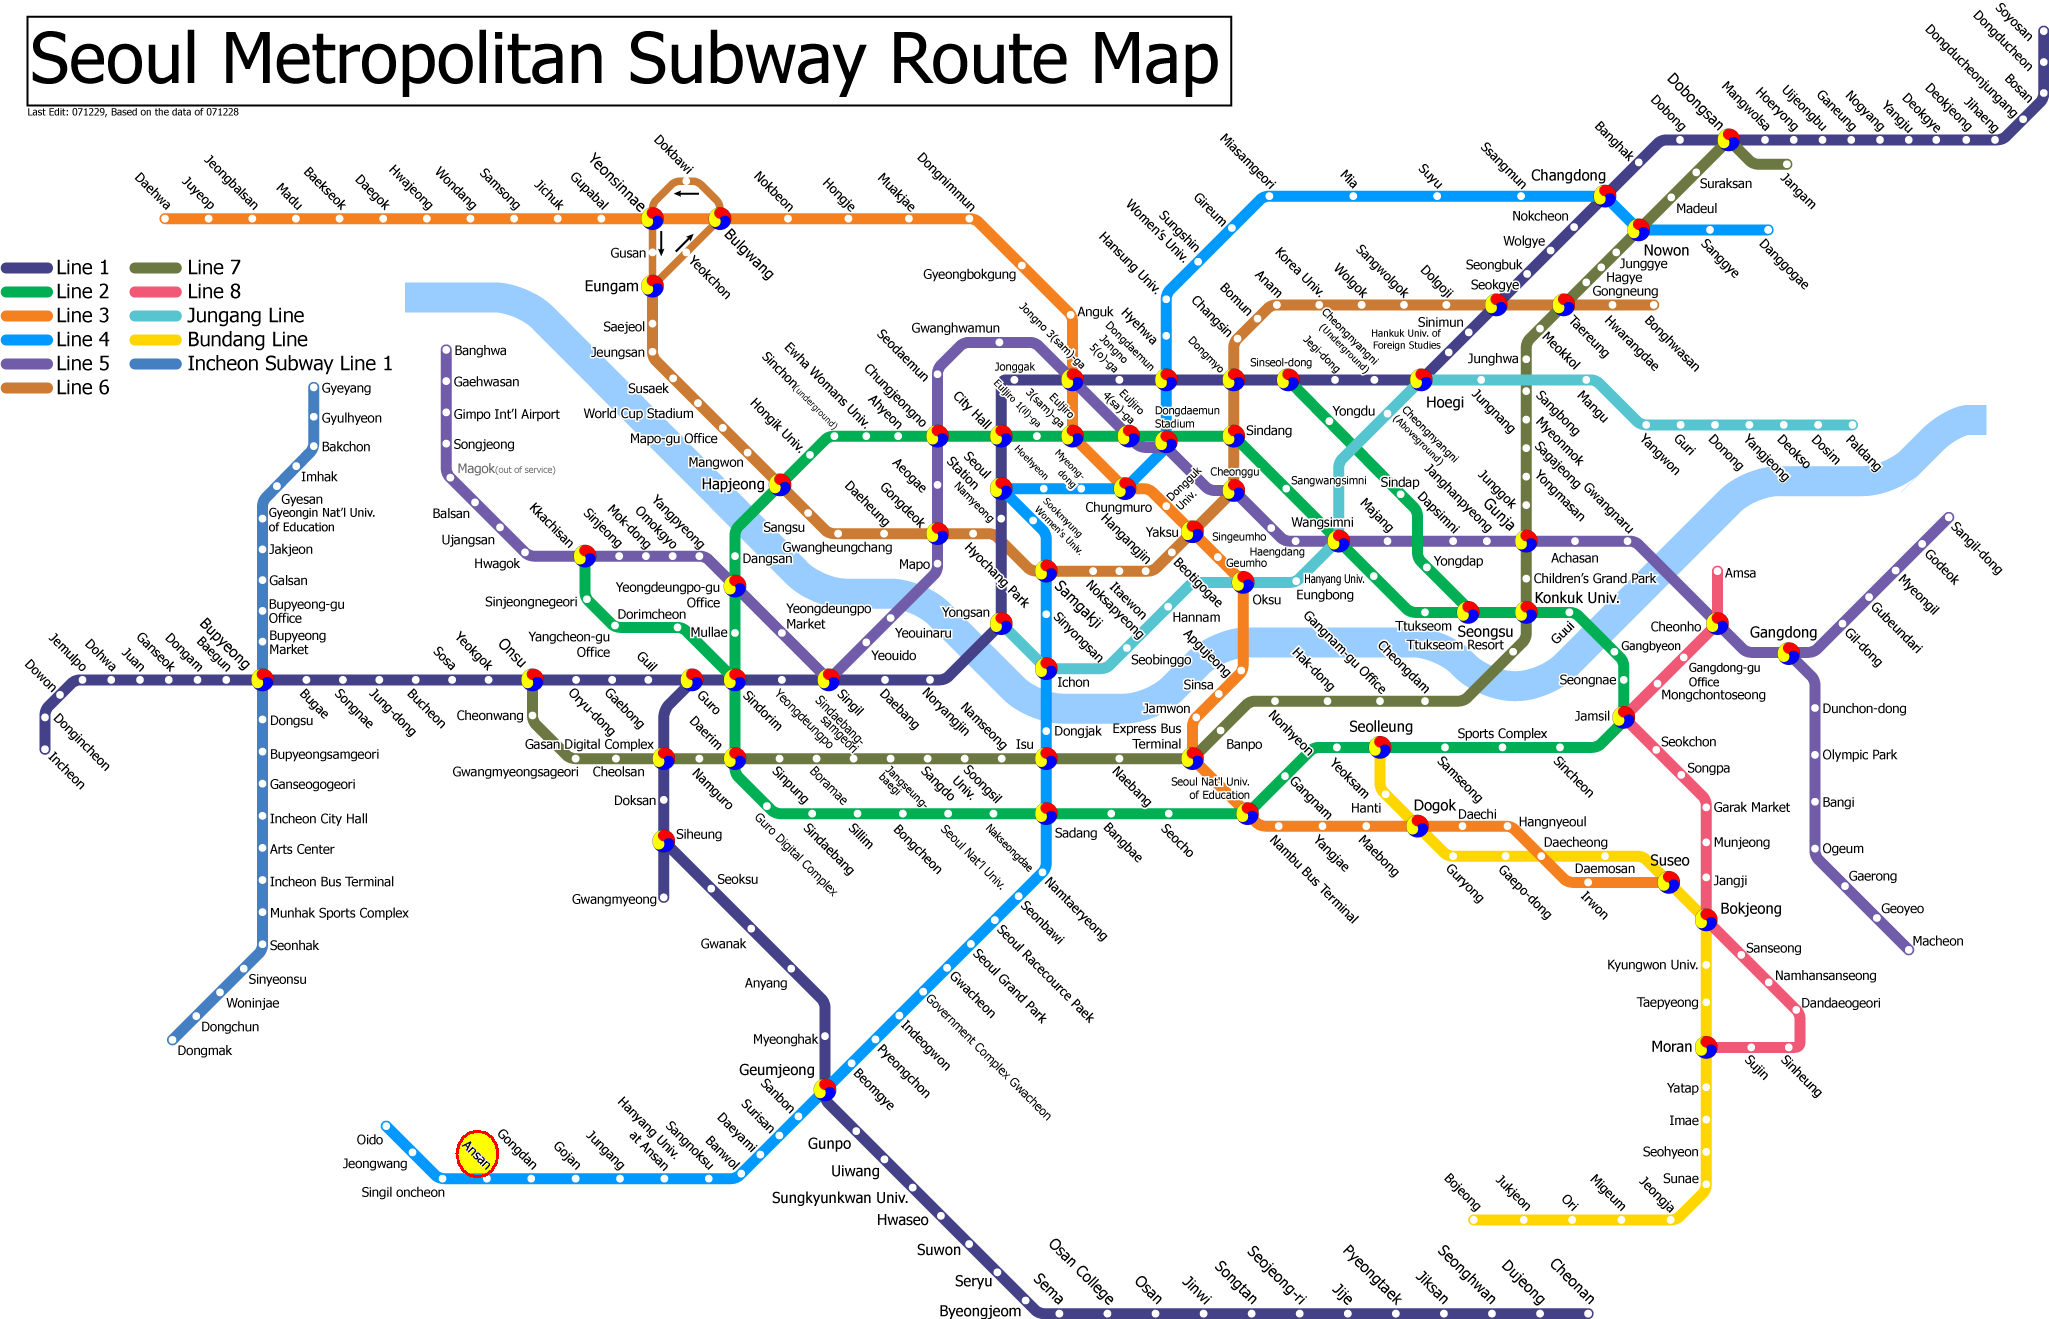 Ansan Seoul Subway Map.Seoul Subway Map Seoul Korea In 2019 Subway Map Seoul Map